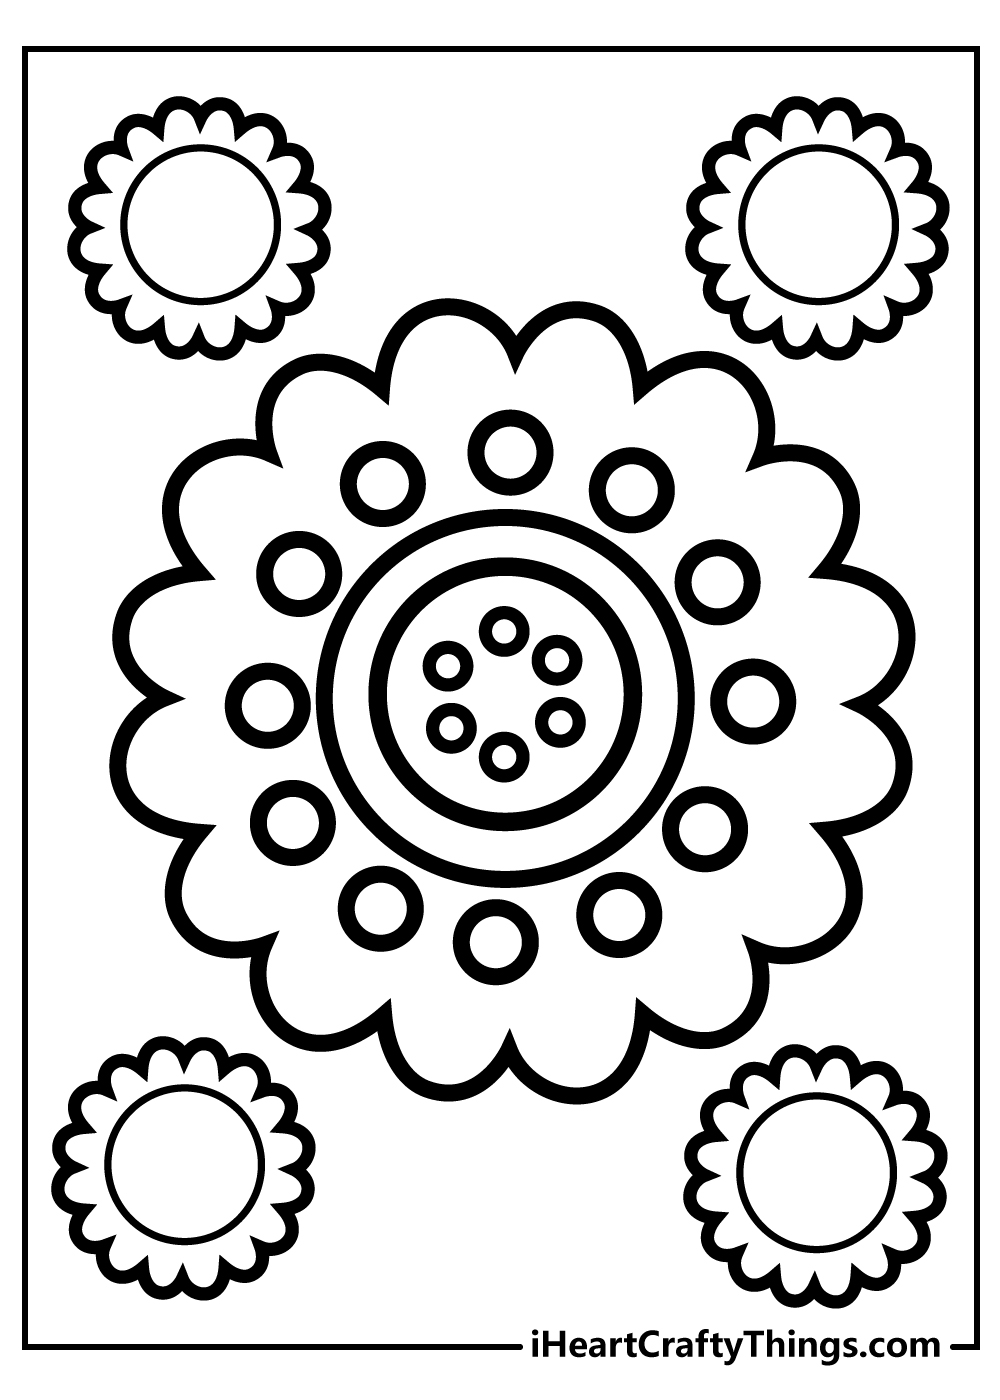 valentine's day simple flower coloring pages to print